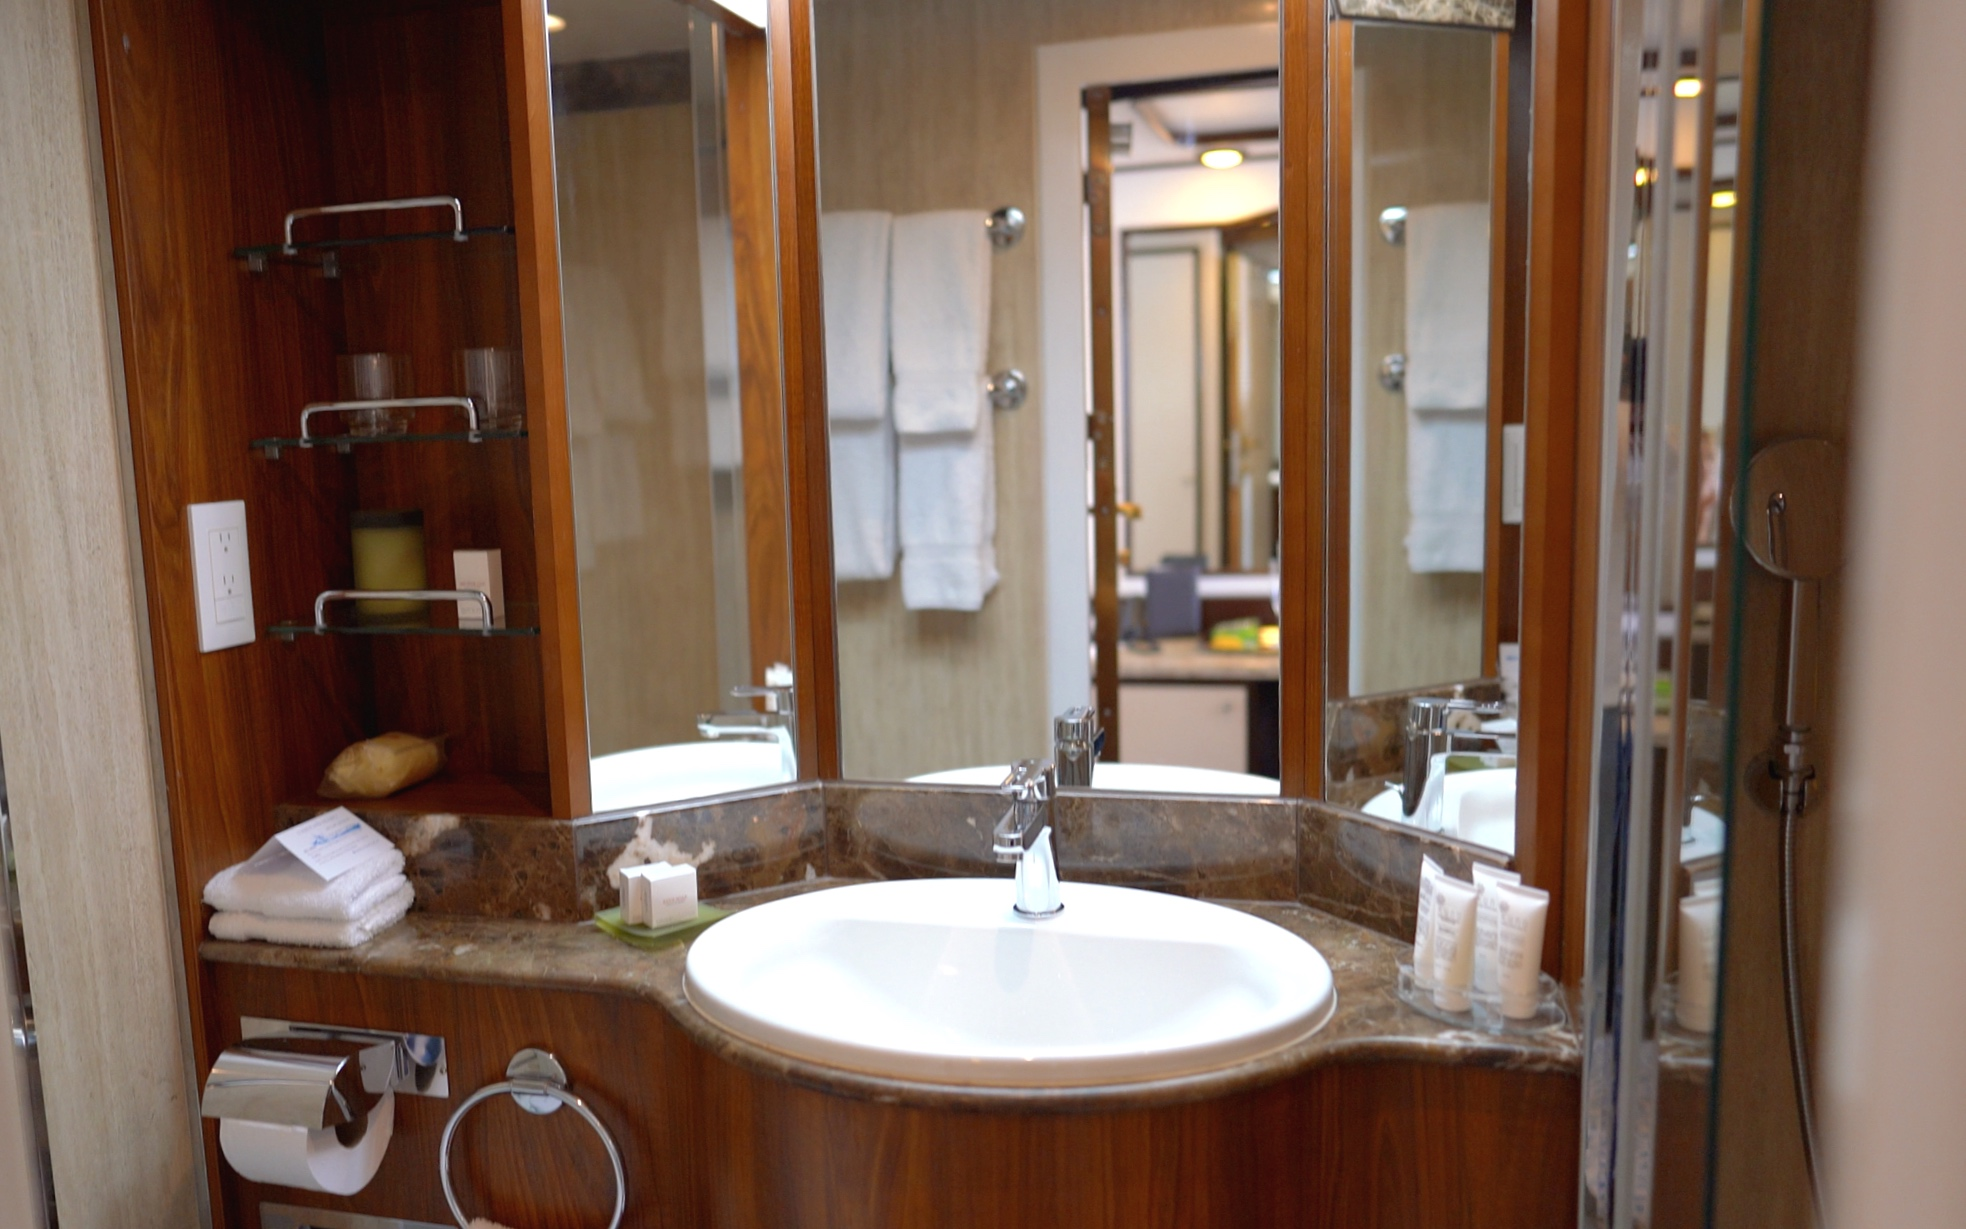 Our beautifully appointed bathroom.